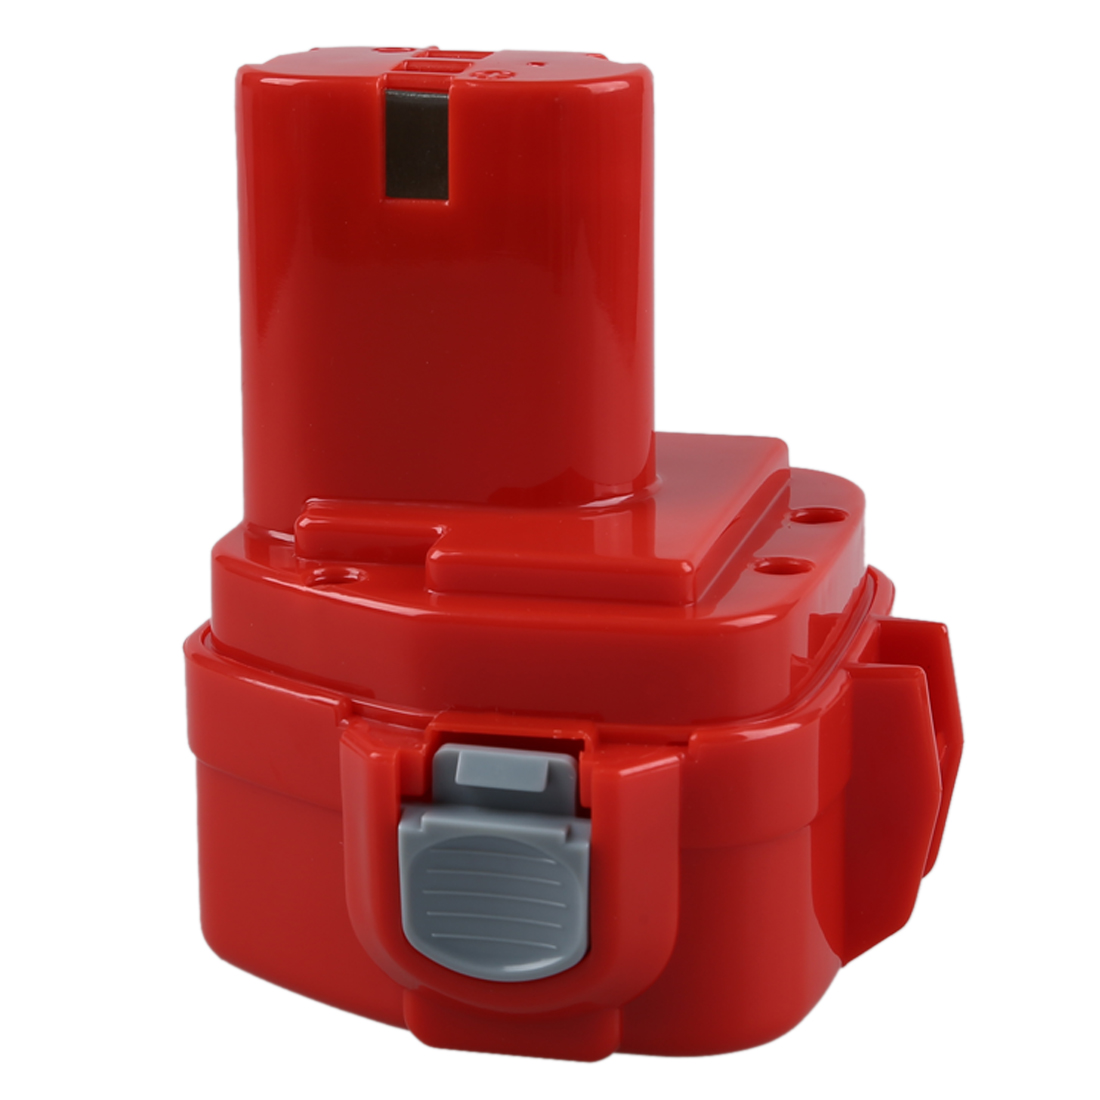 NEW 2.0AH 12V Power Tool Battery for MAKITA Red